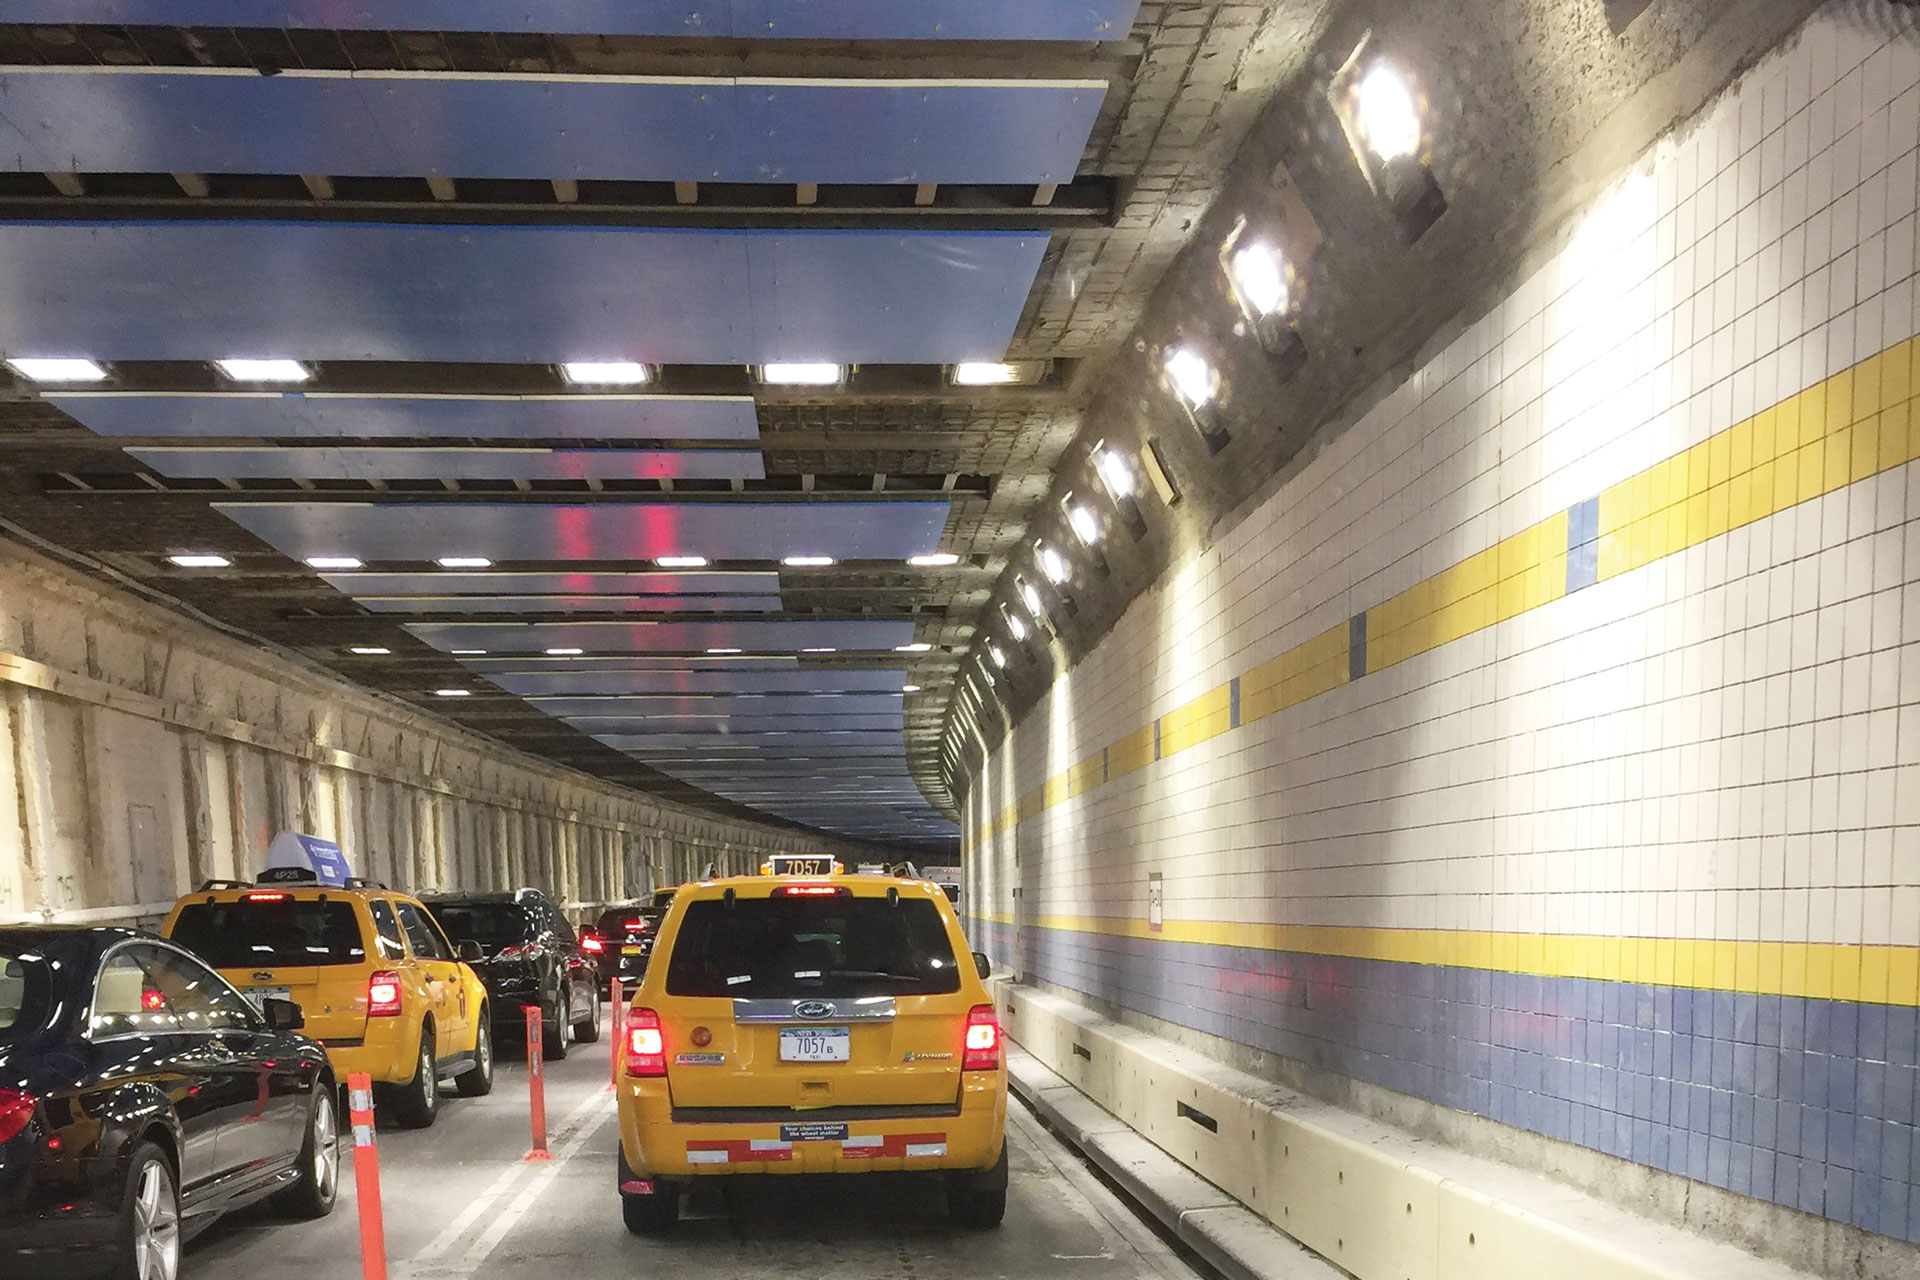 Energy-efficient-tunnel-LED-luminaires-by-Schréder-guarantee-safety-in-Queens-MidTown-Tunnel